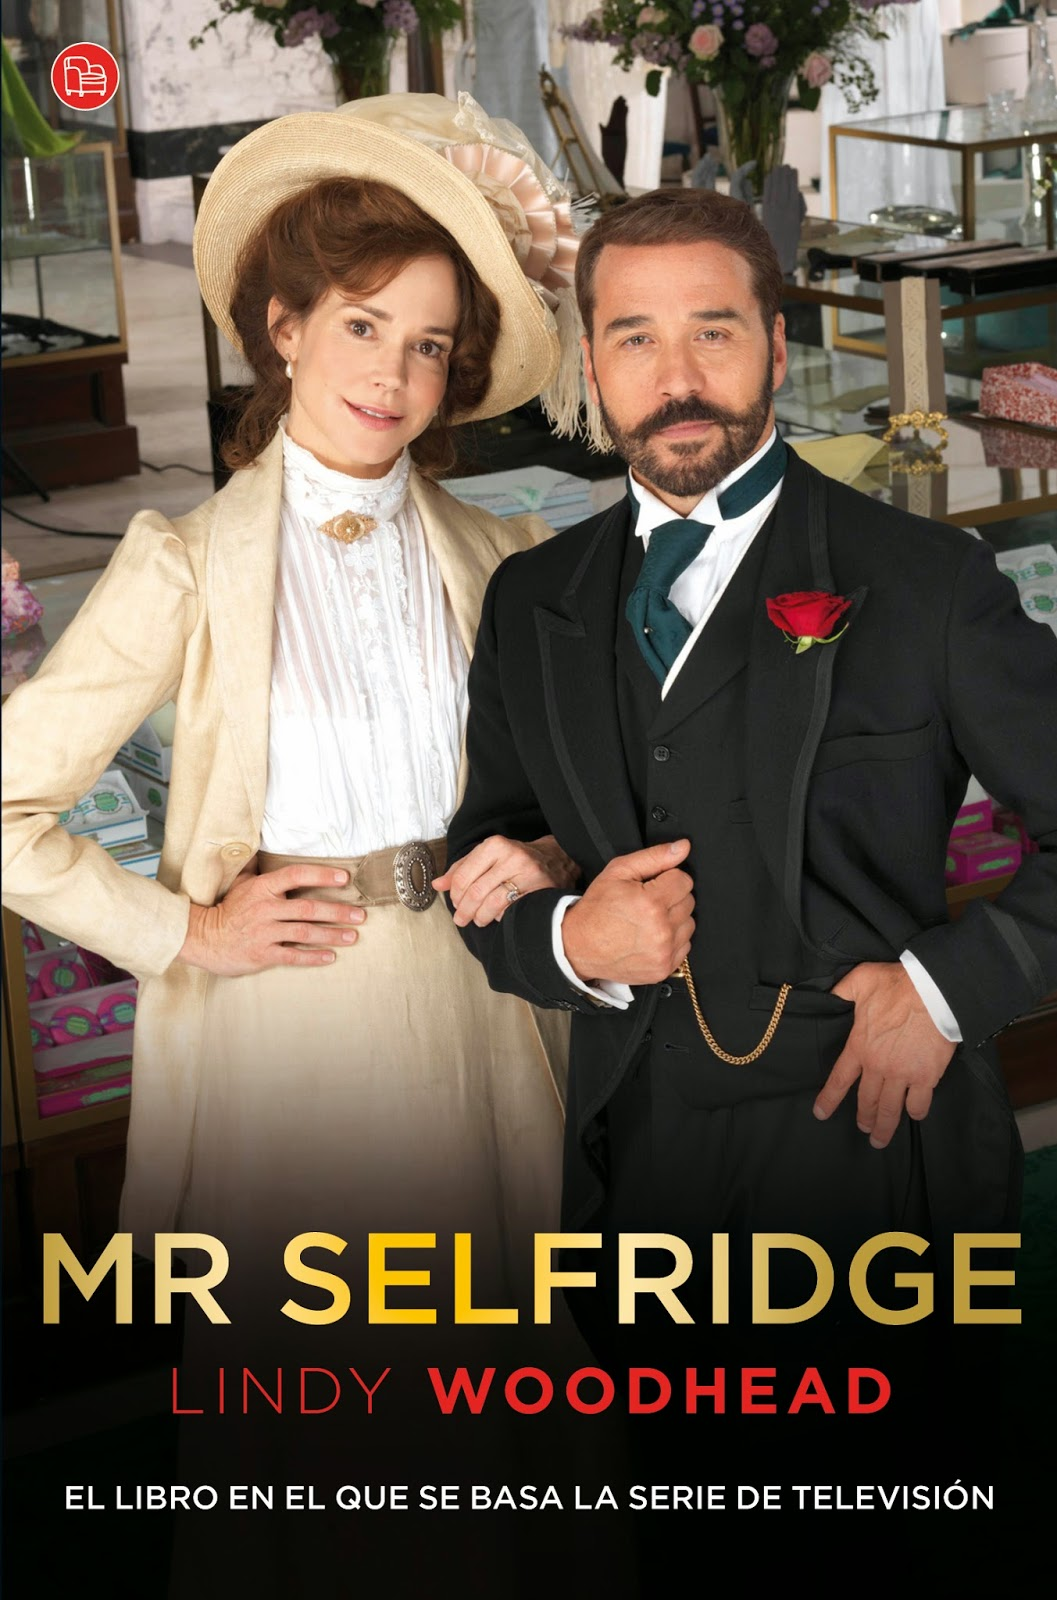 Mr Selfridge - Un ejemplar